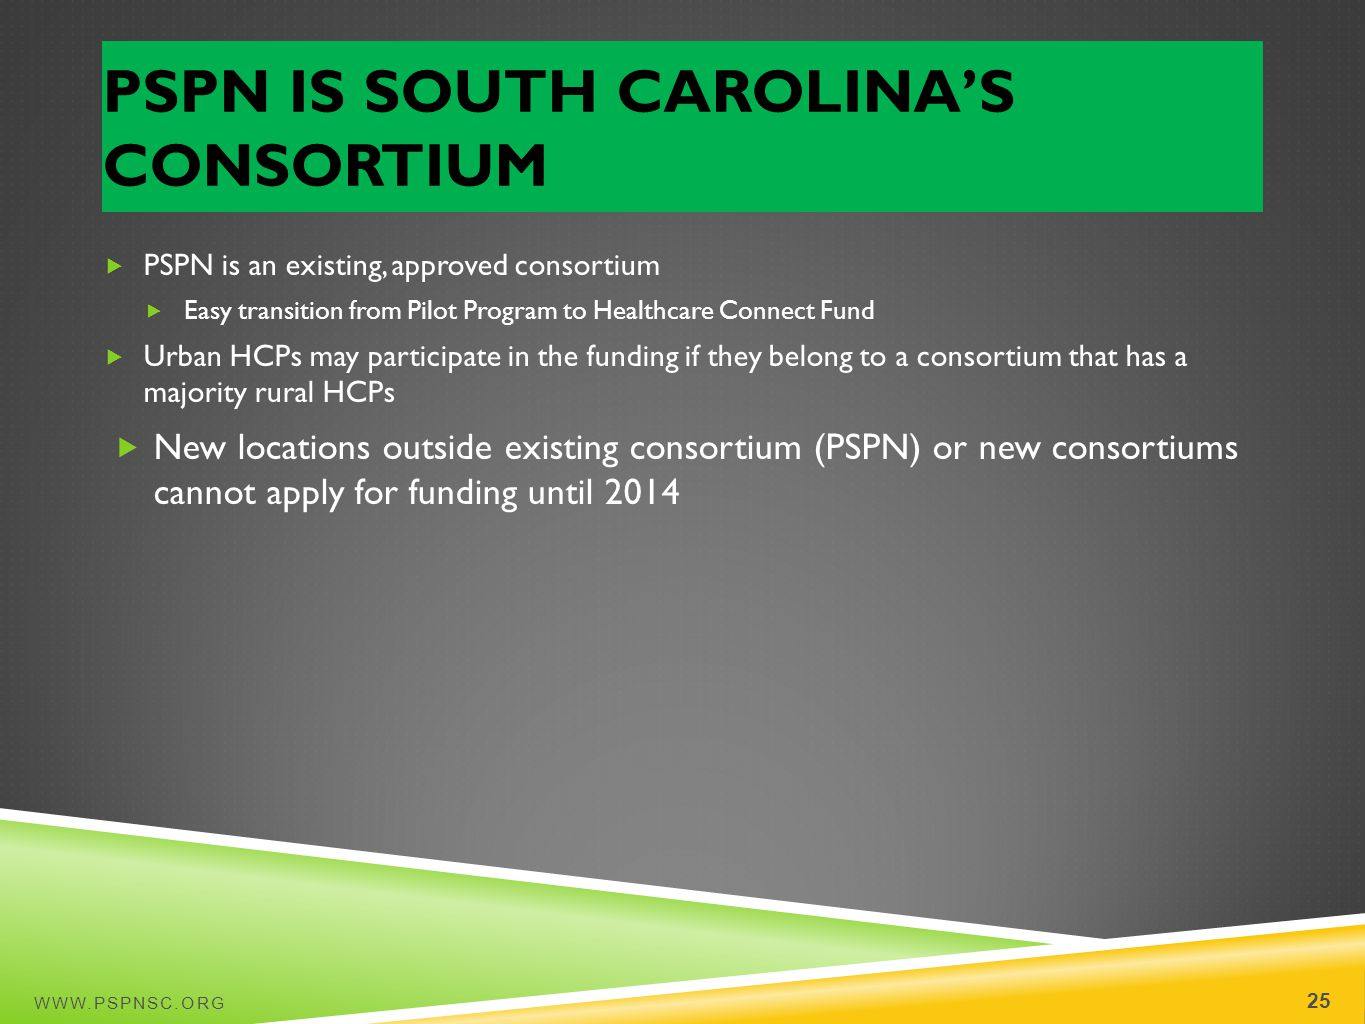 PSPN IS SOUTH CAROLINAS CONSORTIUM WWW.PSPNSC.ORG 25 PSPN is an existing, approved consortium Easy transition from Pilot Program to Healthcare Connect